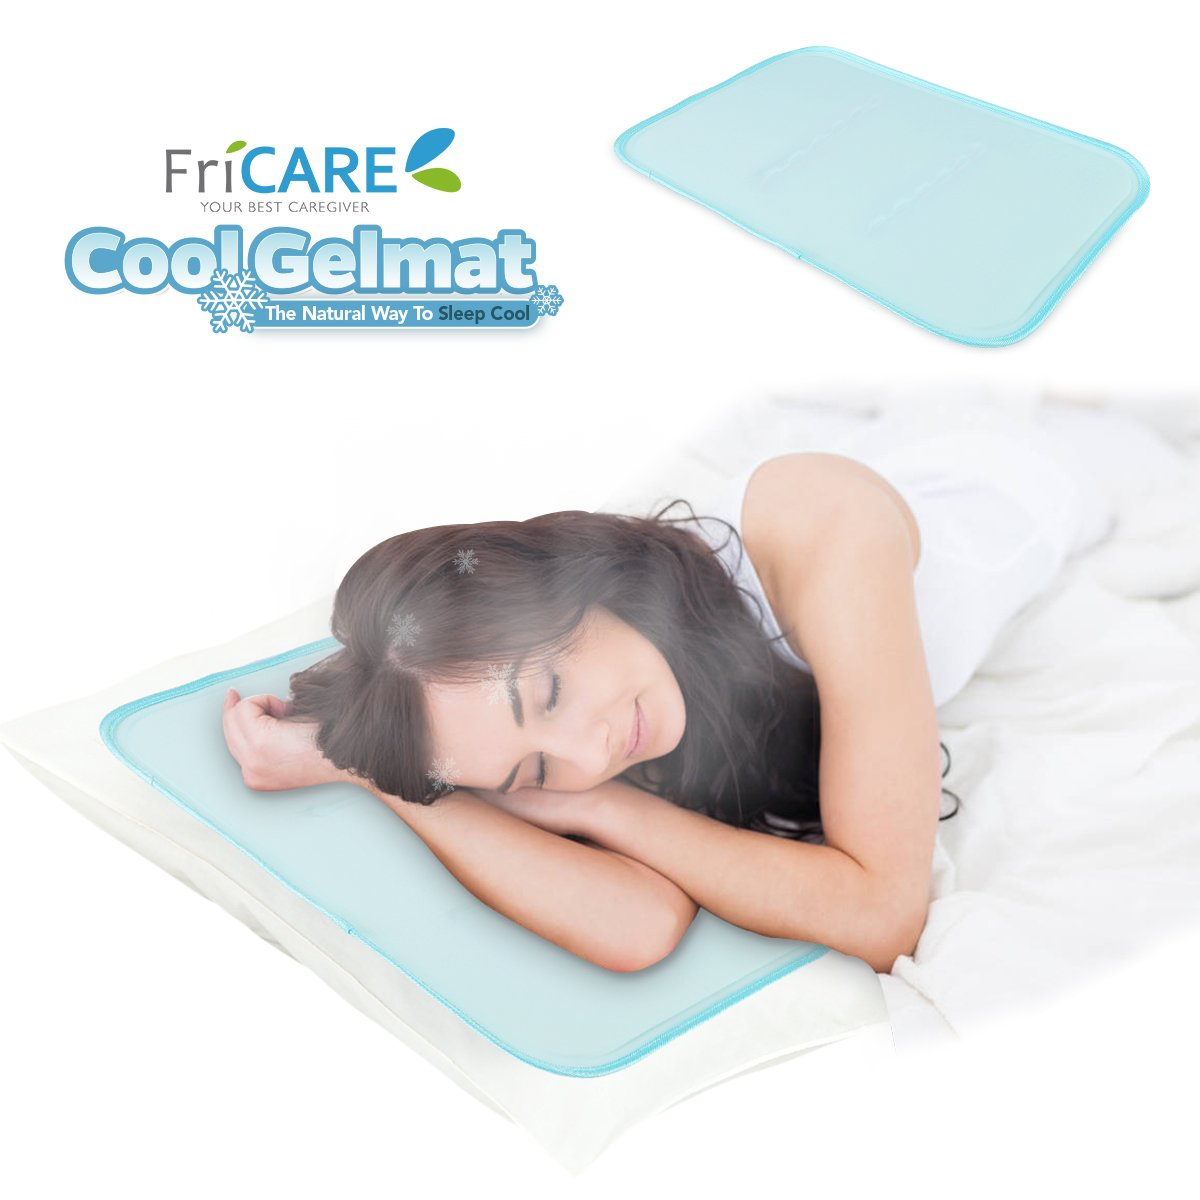 FriCARE Patented Cool Gel Pillow Mat, Soft Gel Pad for Migraines | Hot Flashes | Neck Pain Relief, No Water Leaking, 34 x 54 CM, Green